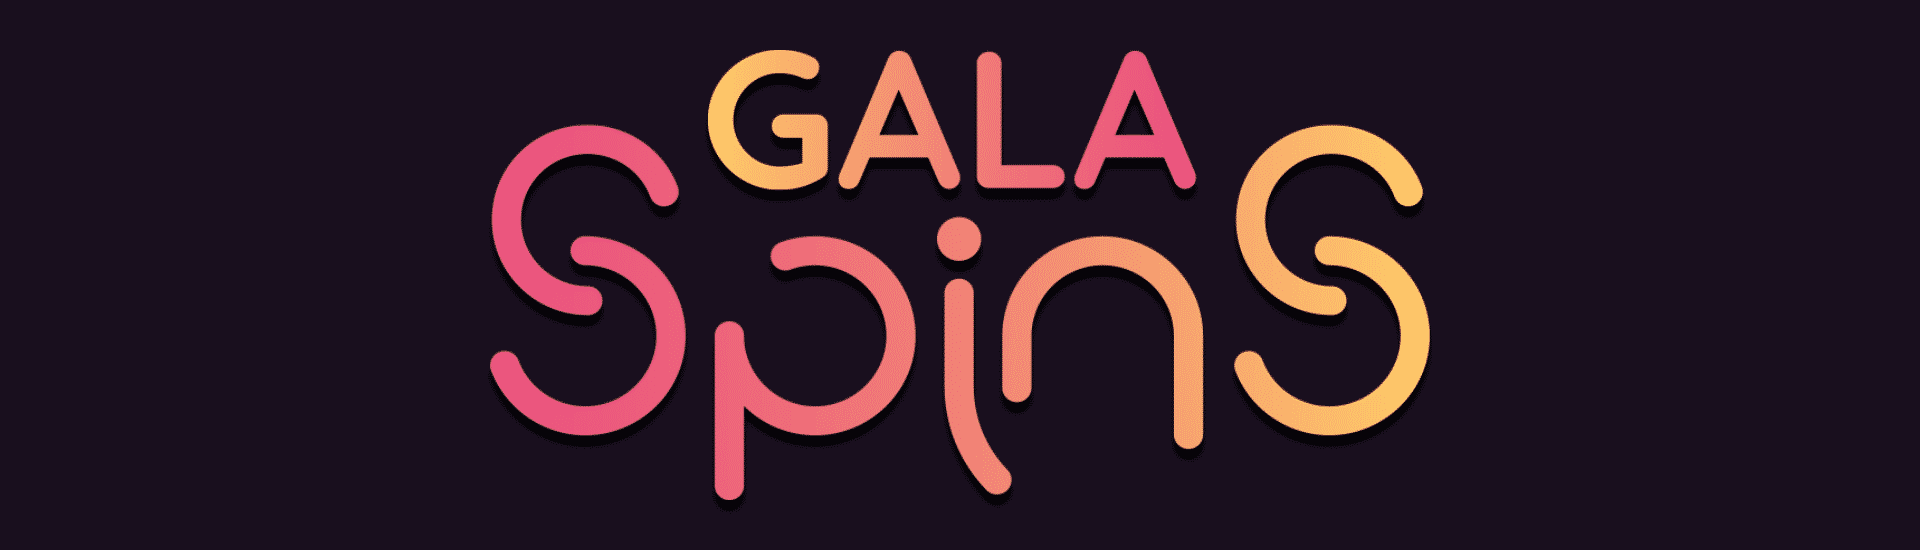 Gala Spins Featured Image